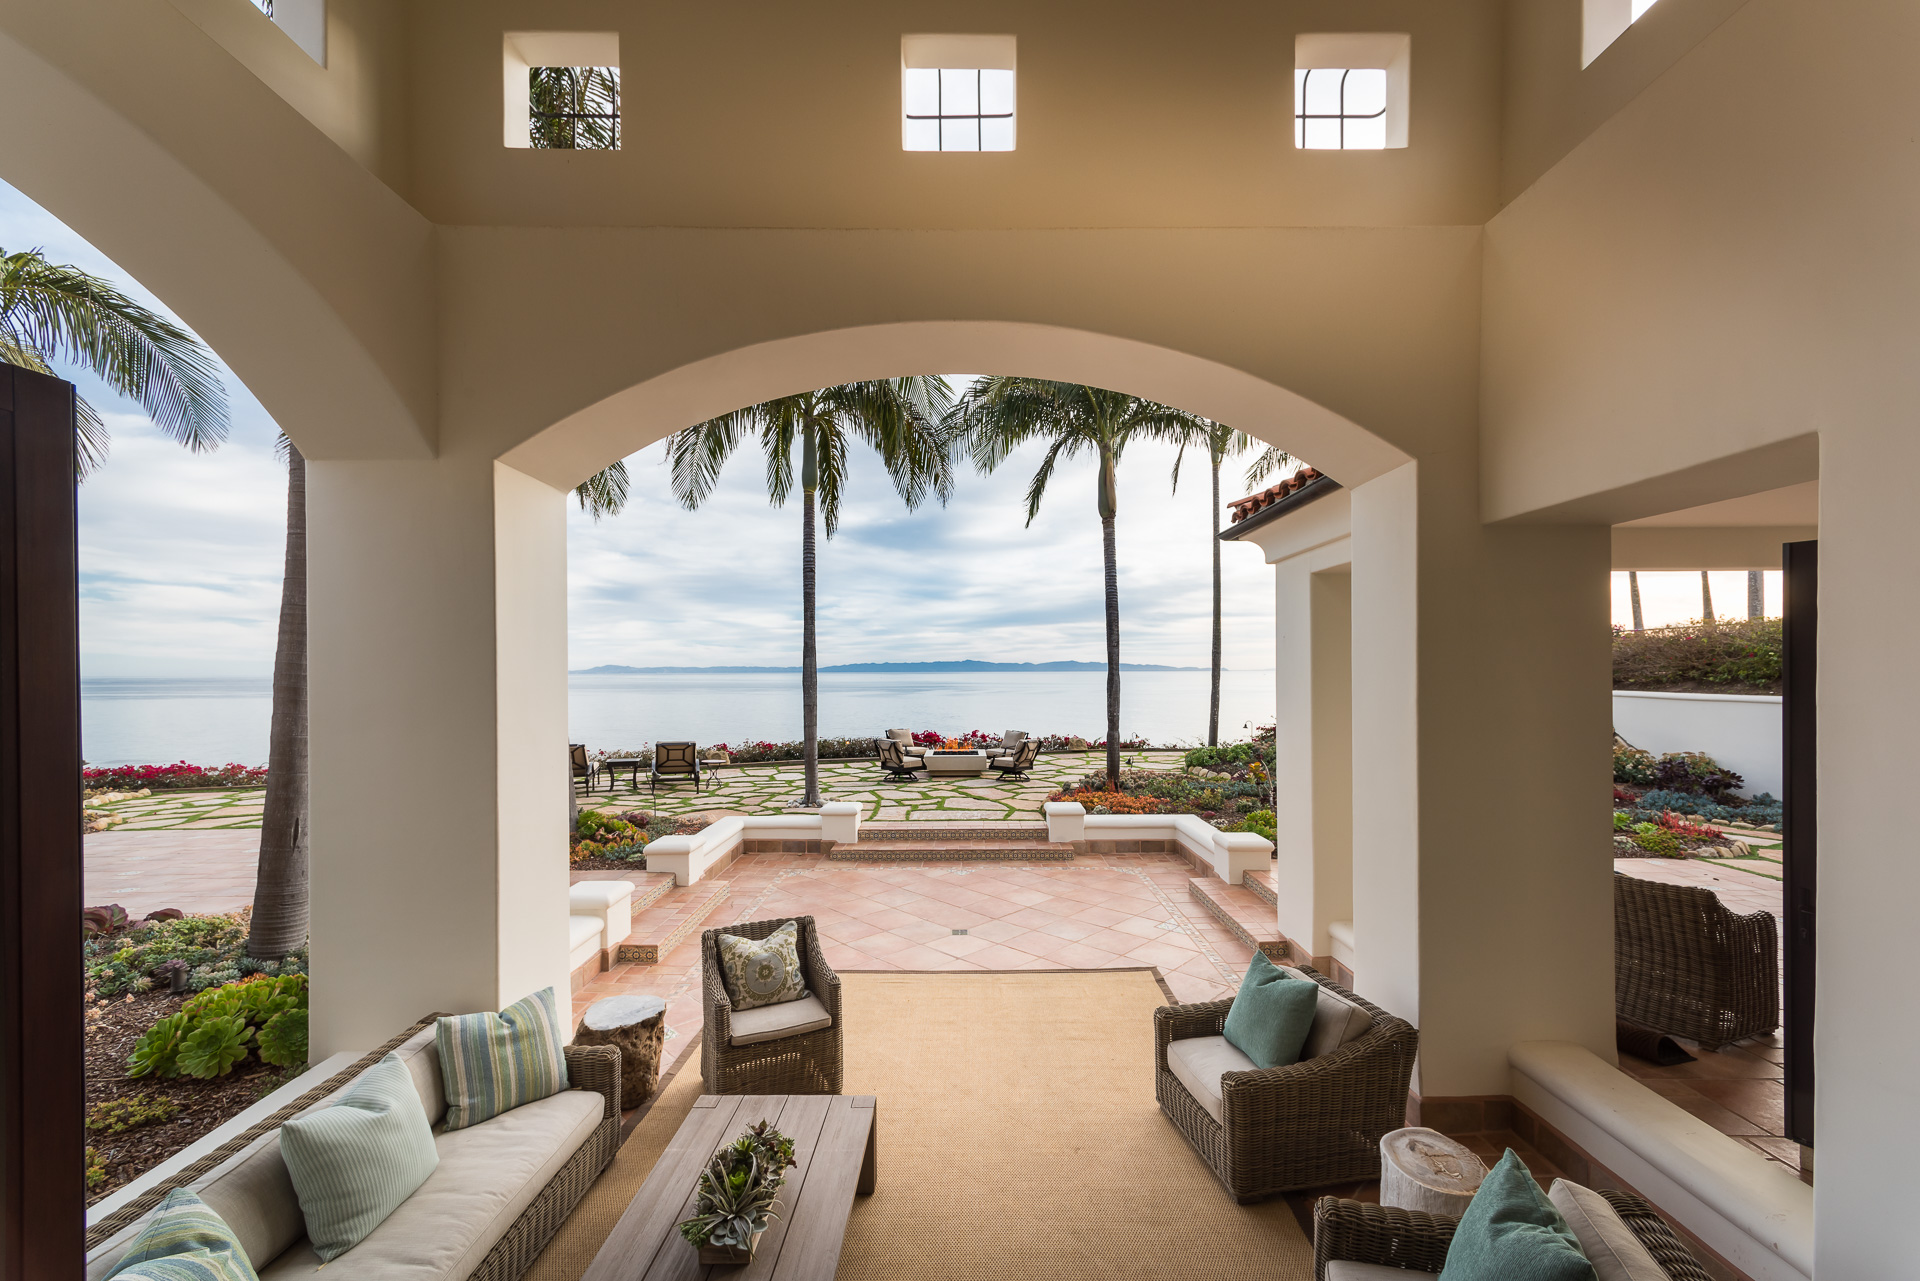 Covered Outdoor Patio